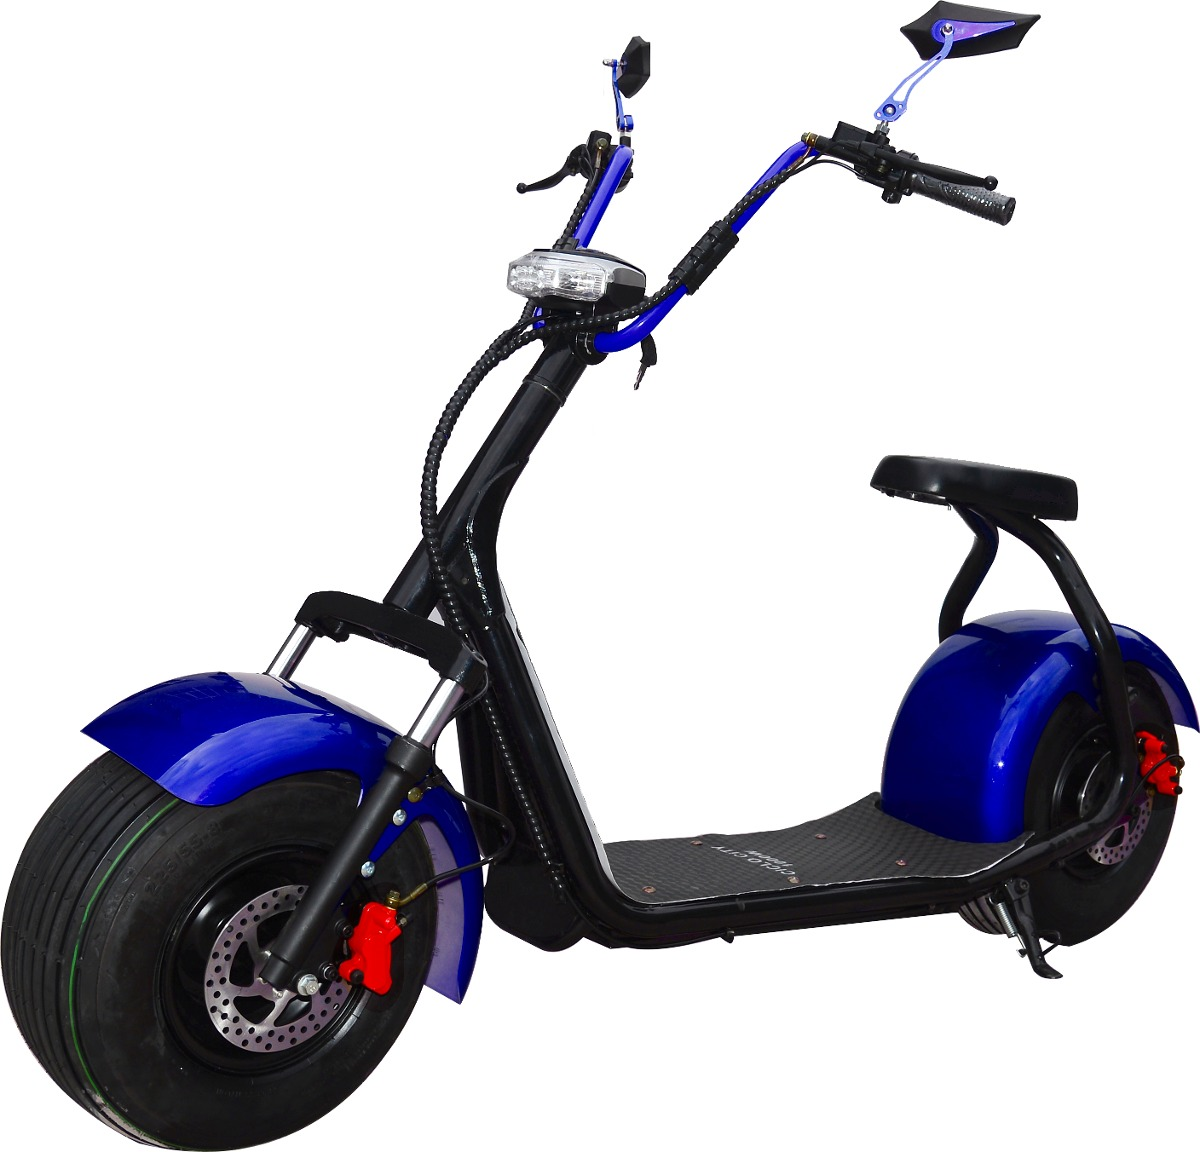 scooter el trica road city 1000w 60v com bluetooth r em mercado libre. Black Bedroom Furniture Sets. Home Design Ideas